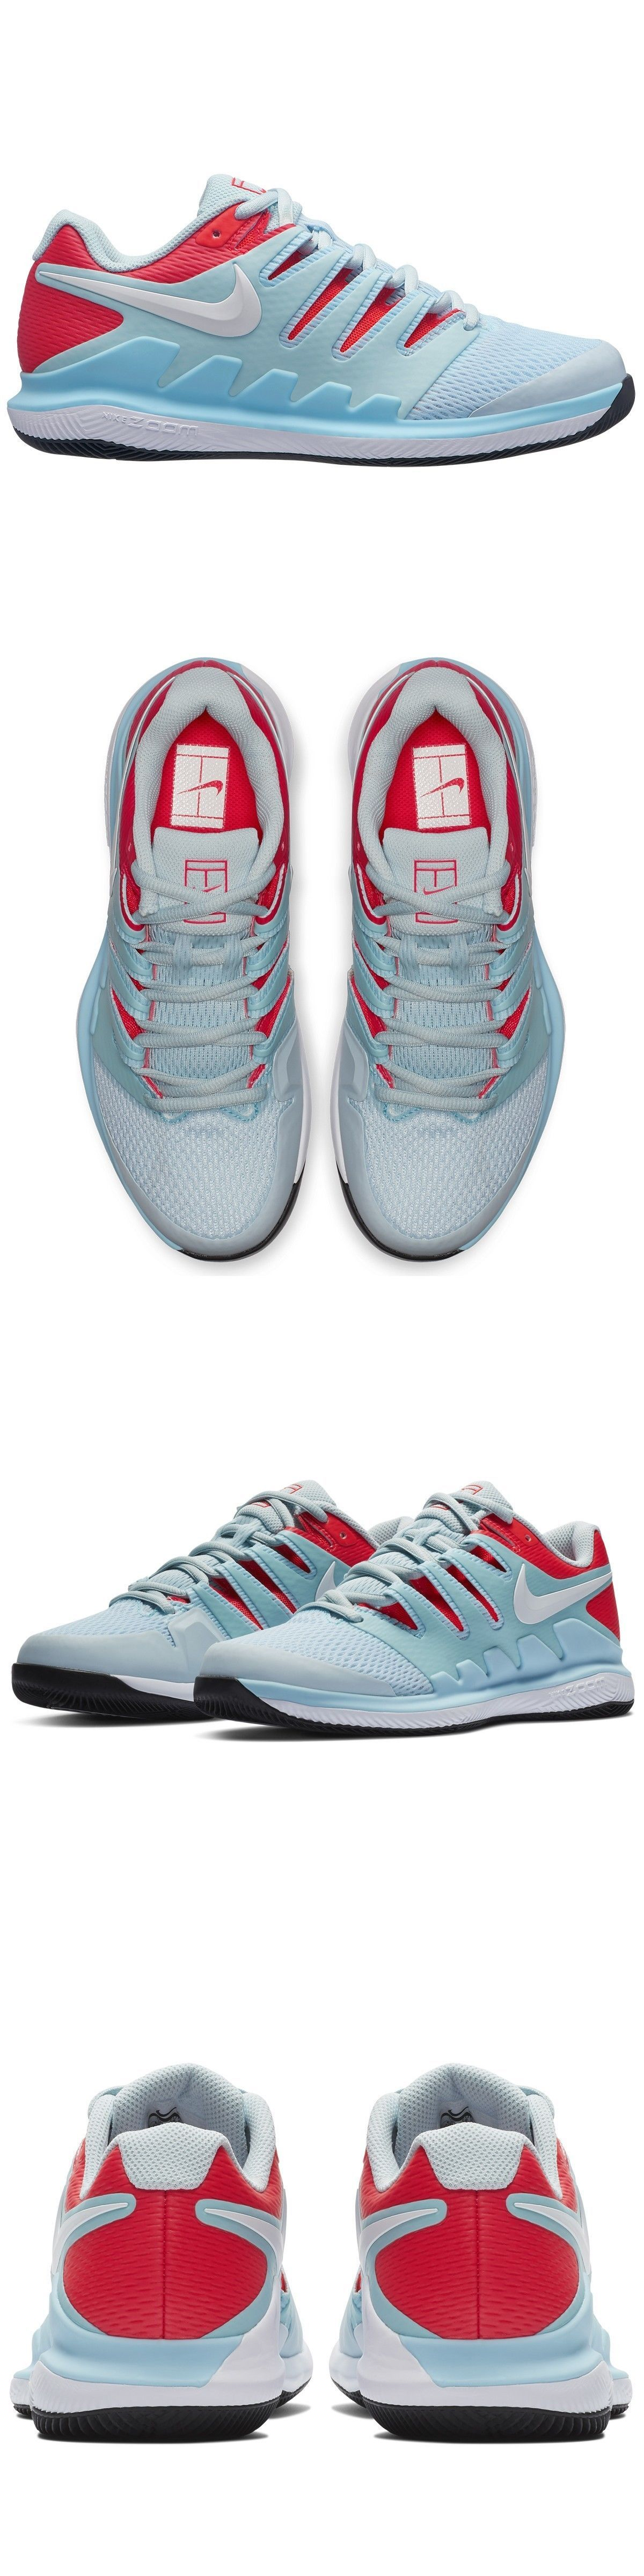 ee04706129 Clothing Shoes and Accessories 62229  Nike Air Zoom Vapor X Blue Red White  Women S Tennis Shoes (Roger Federer) -  BUY IT NOW ONLY   105 on  eBay   clothing ...